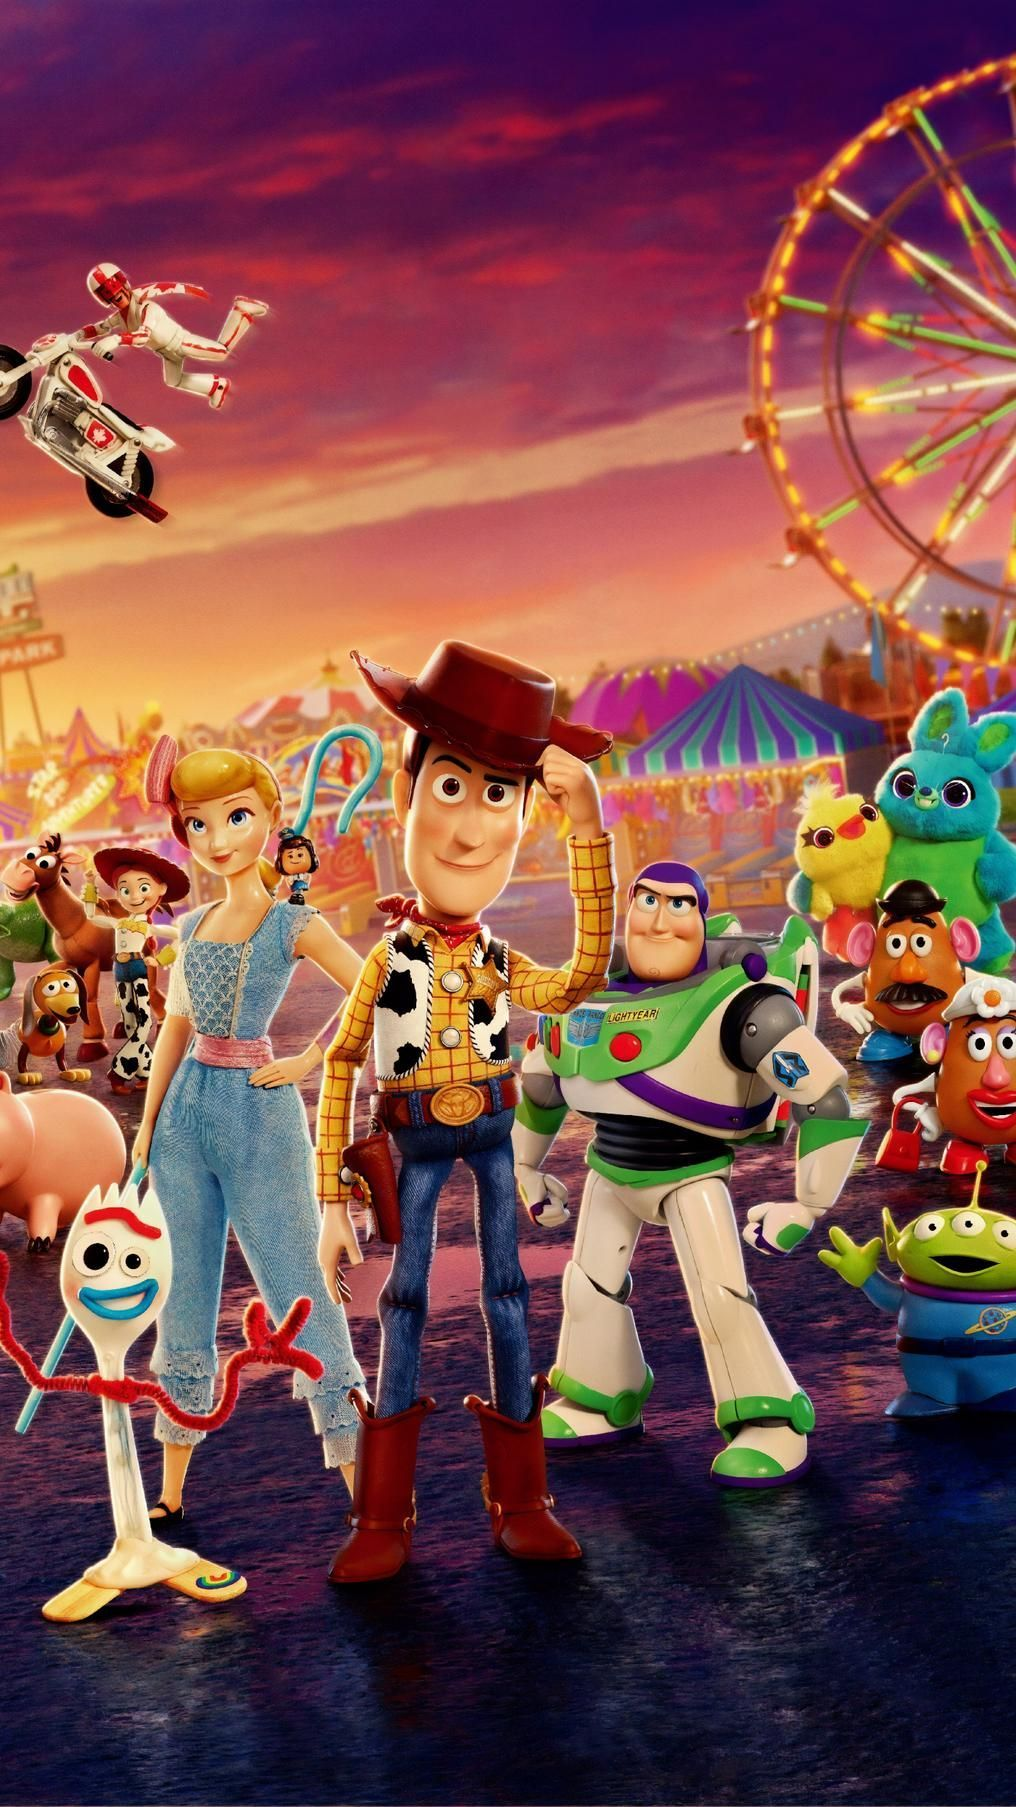 Toy Story 4 Wallpapers - Top Free Toy Story 4 Backgrounds ...